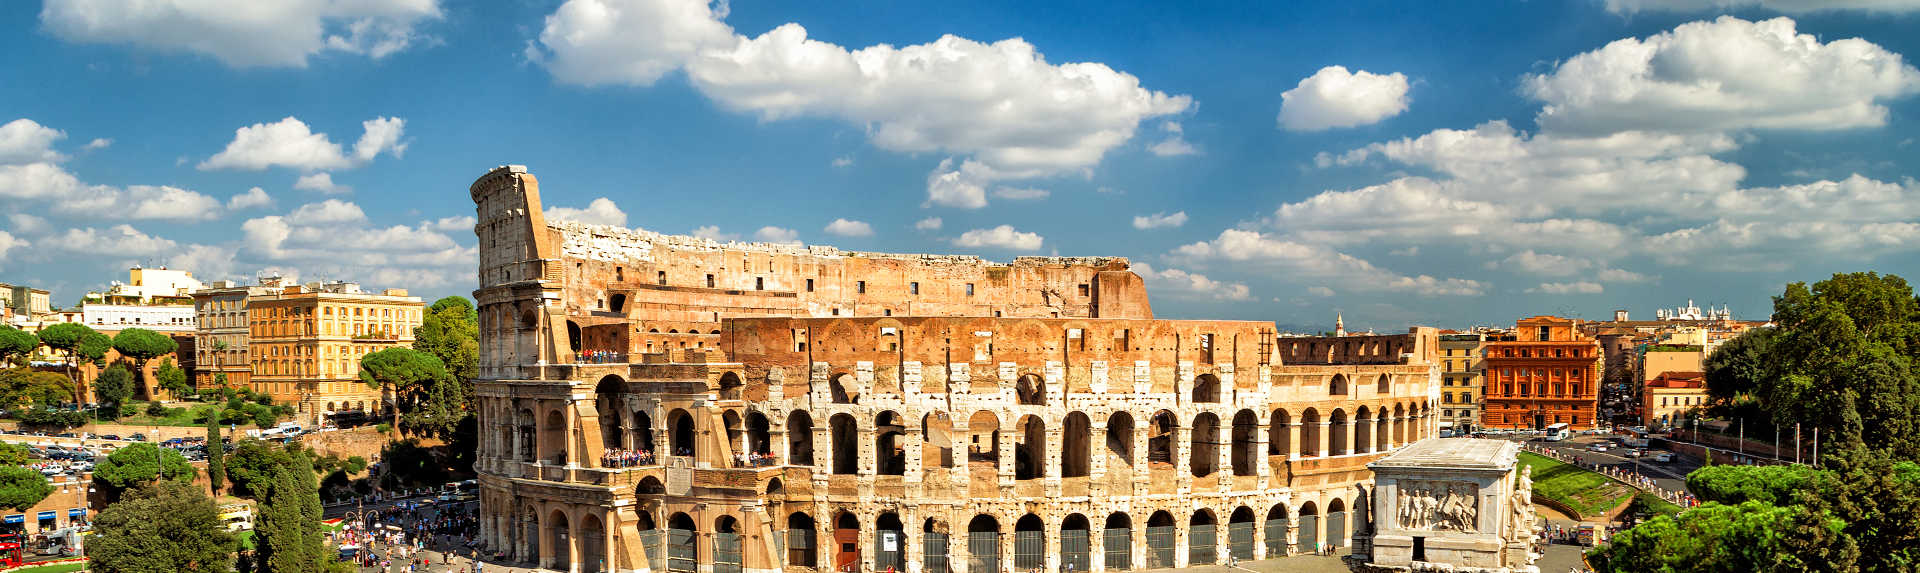 How much does it cost to go to the Colosseum?